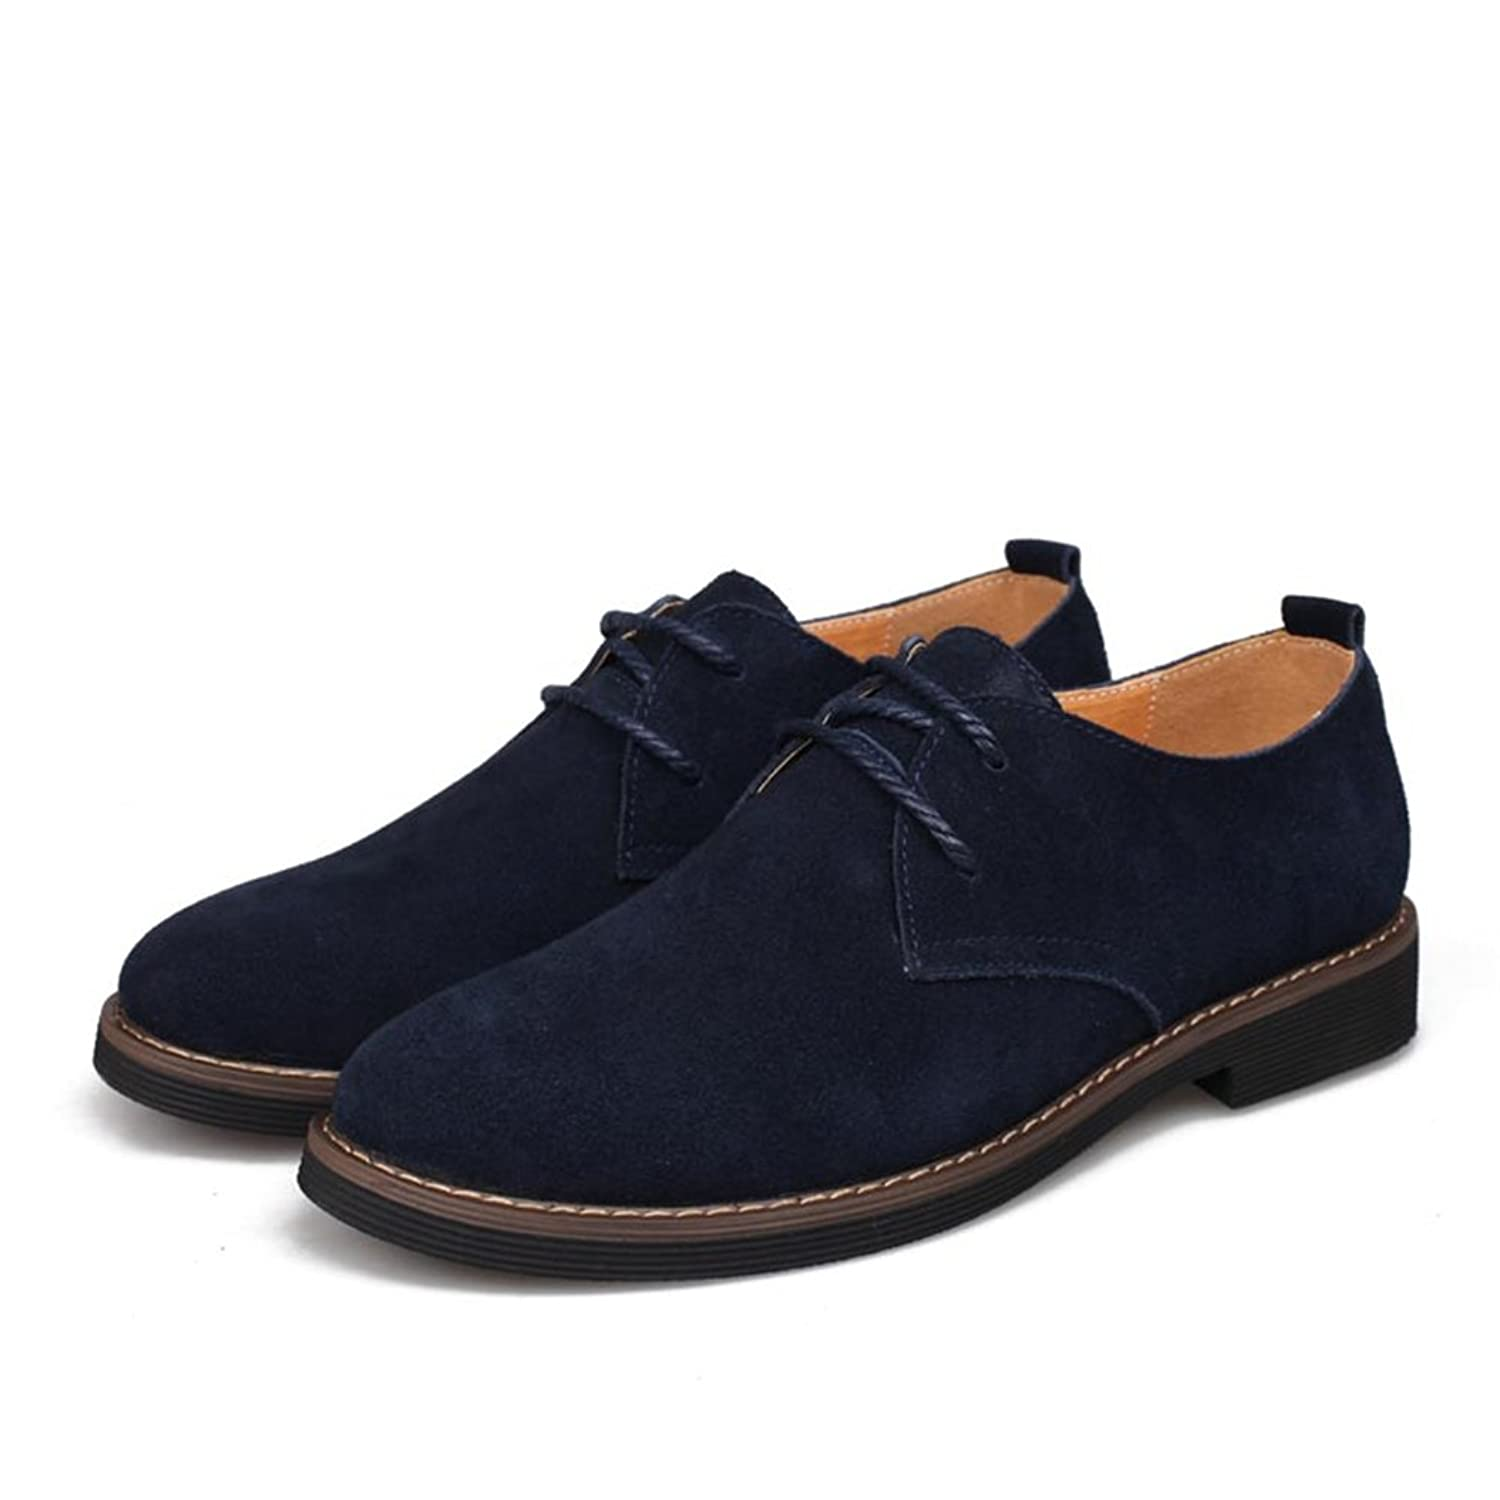 Shoes Men's Shoes Suede Spring Summer Fall Winter Comfort Lace-up For Casual (Color : C Size : 43)